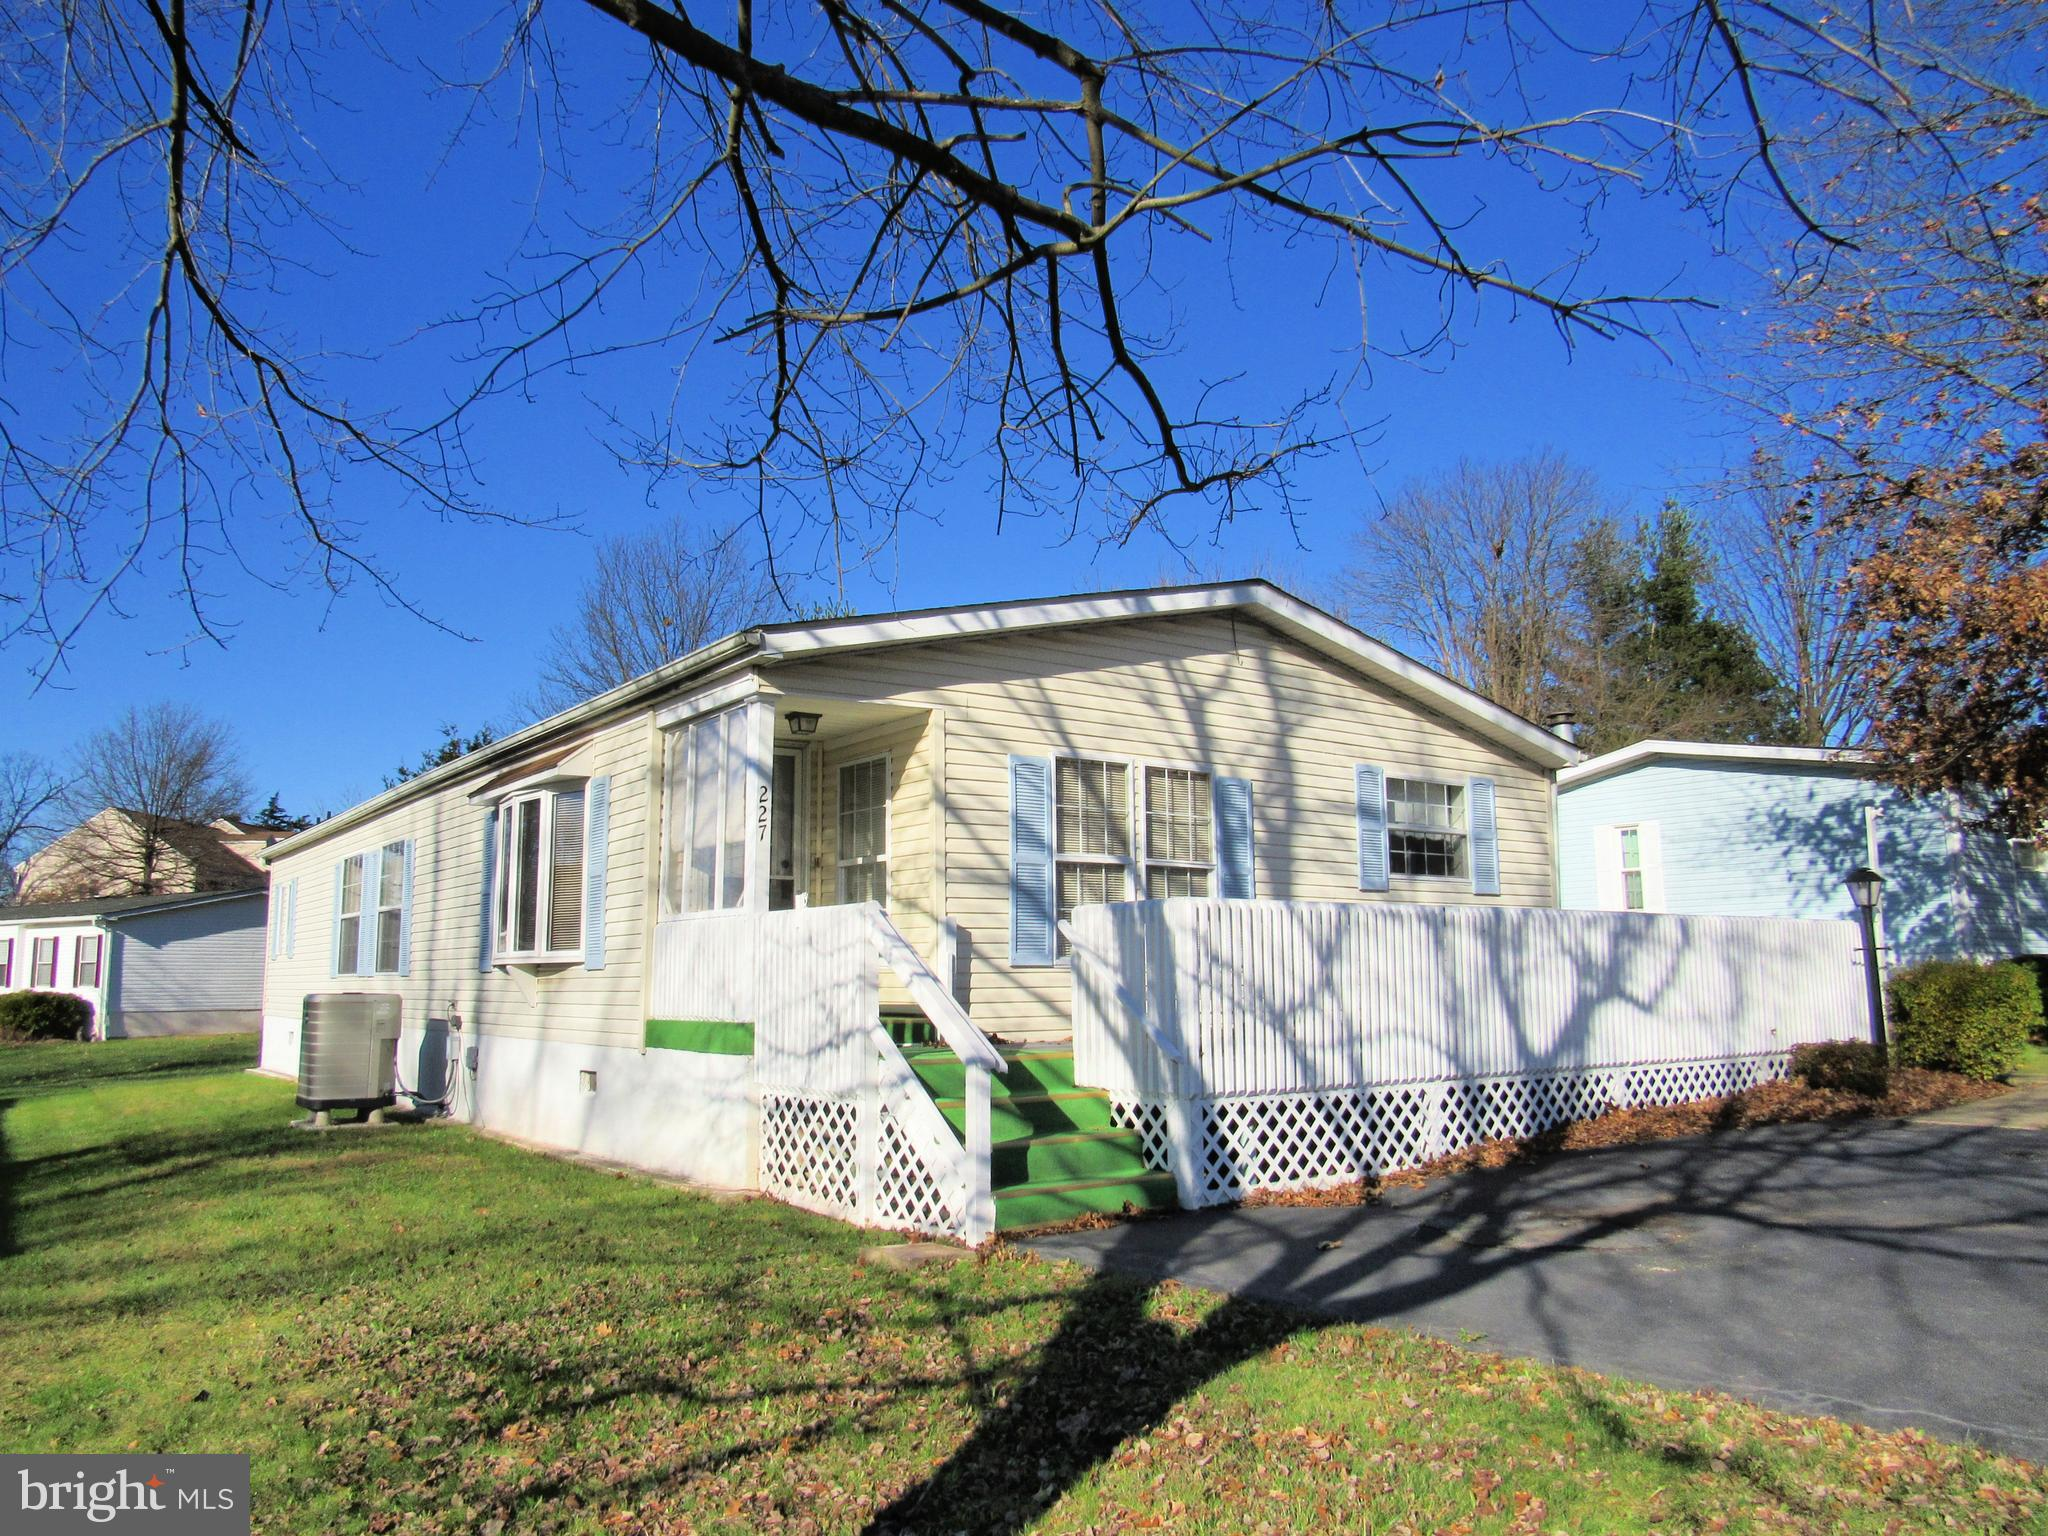 Spacious Red Hill Estates home offers living room, dining room, kitchen,  2 bedrooms and master suite with large bath and walk-in closet.  There is a large laundry room with additional storage.  You'll enjoy sitting on the large front deck or in the side sun porch. Property is convenient to shopping, major routes of travel and Montgomery County Park system.  Current lot rent is $557/month whihc is subject to change.